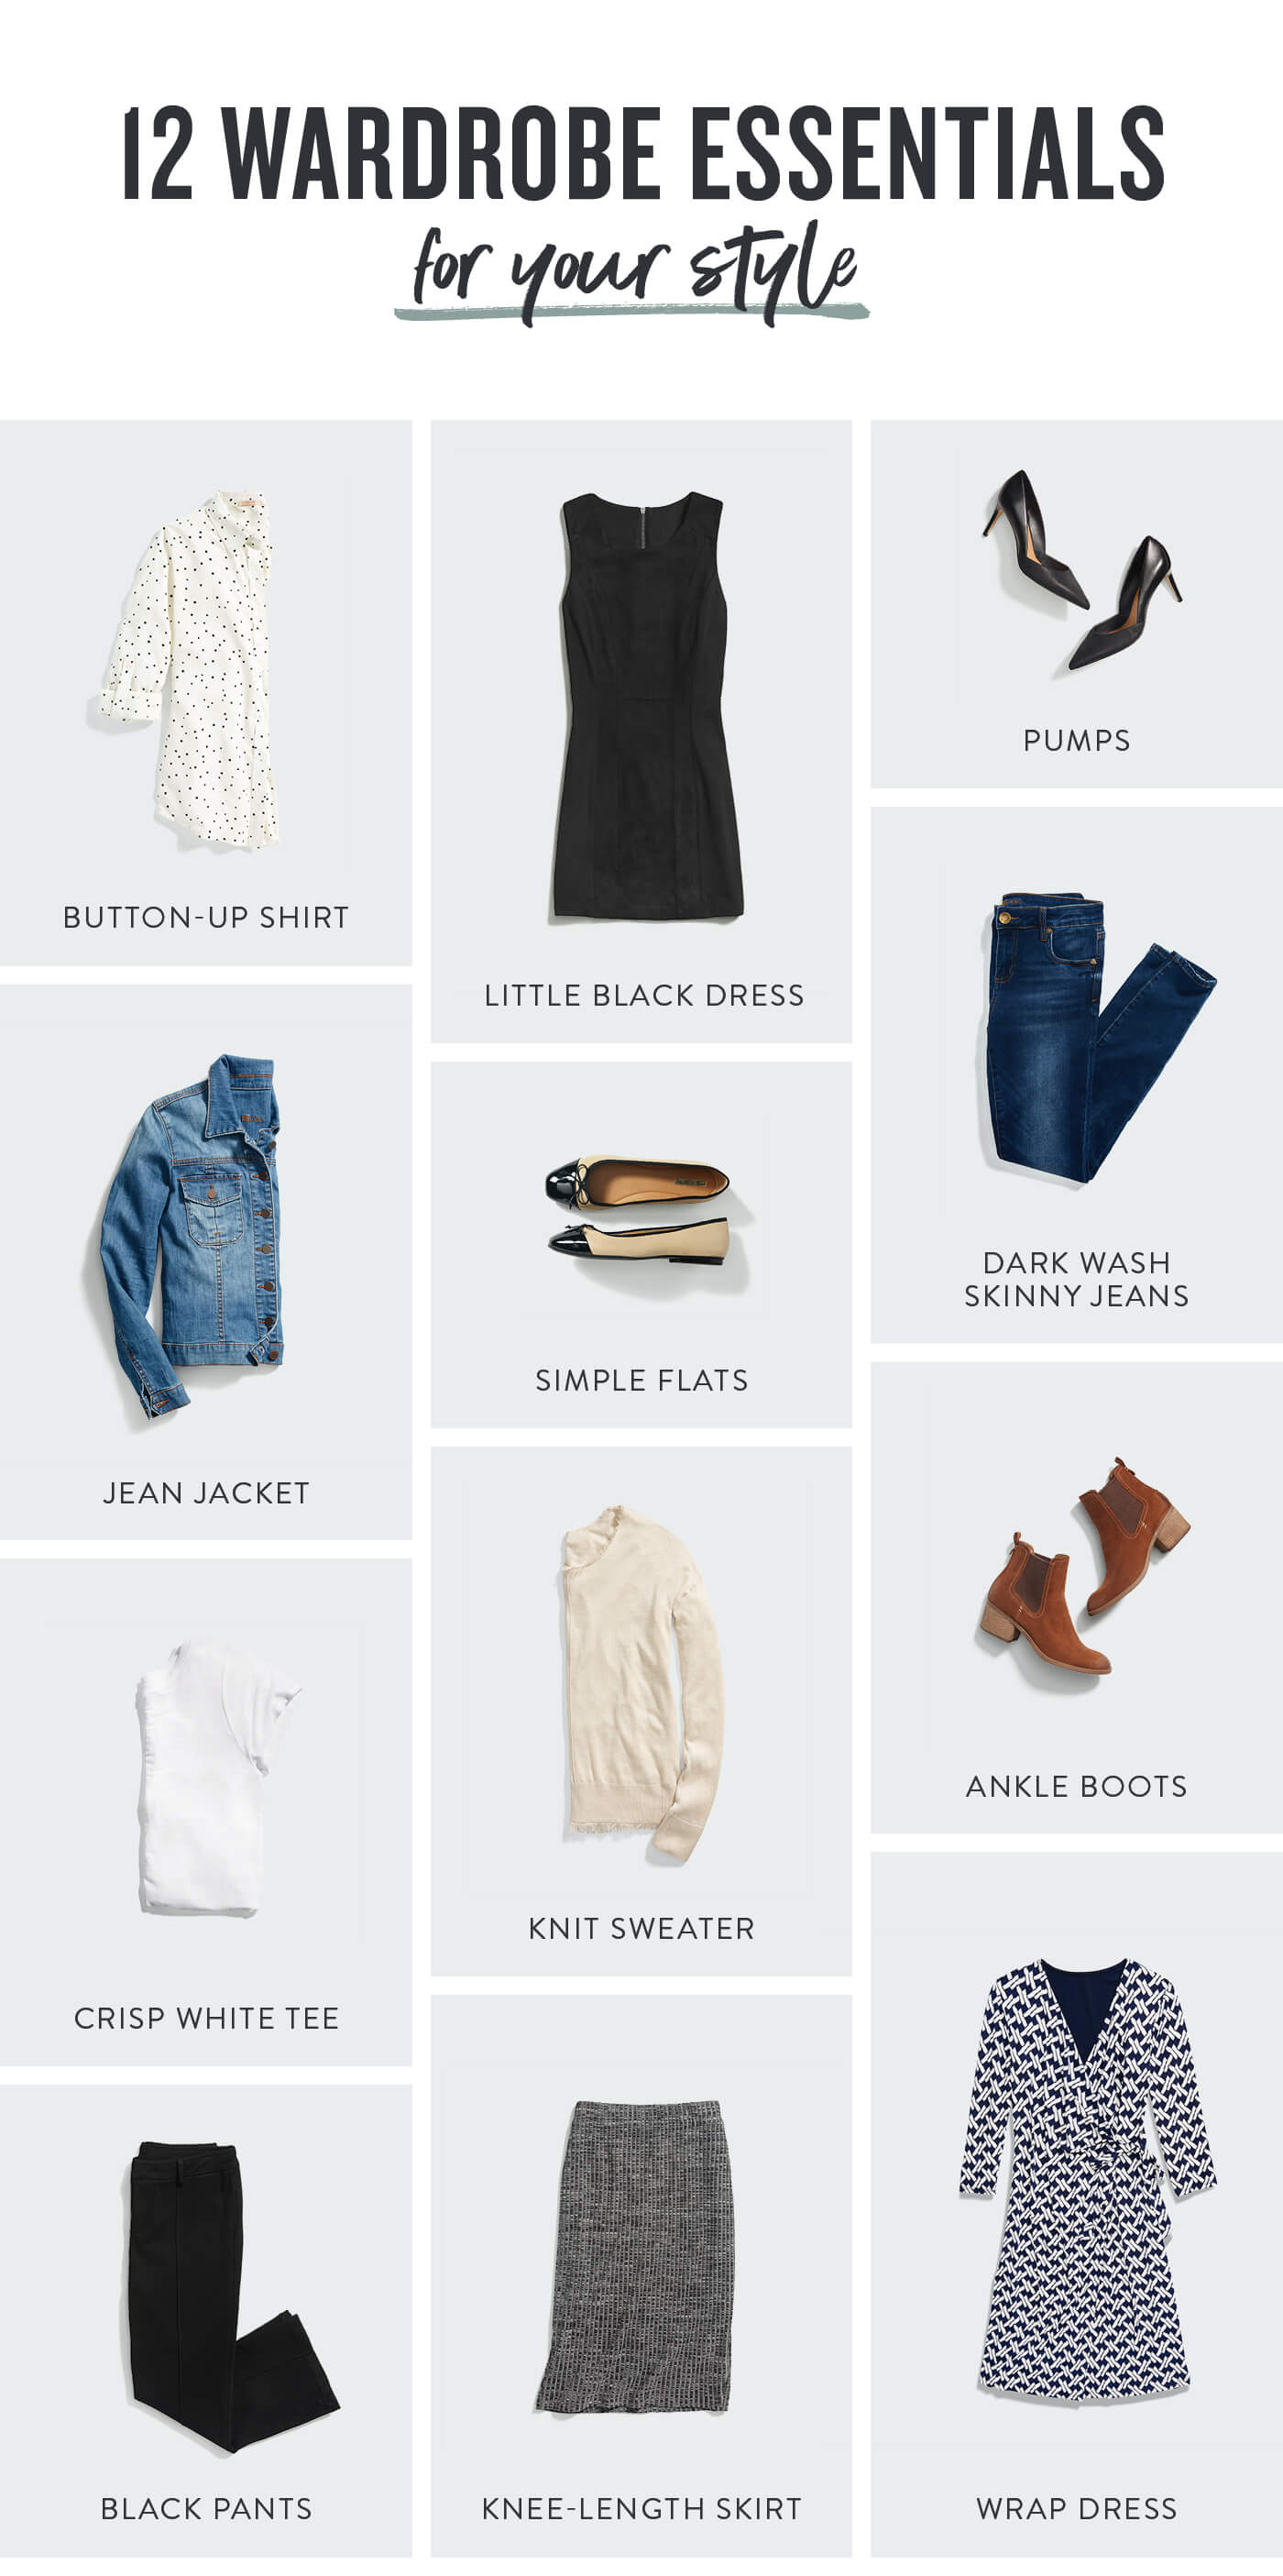 12 Wardrobe Essentials Stitch Fix